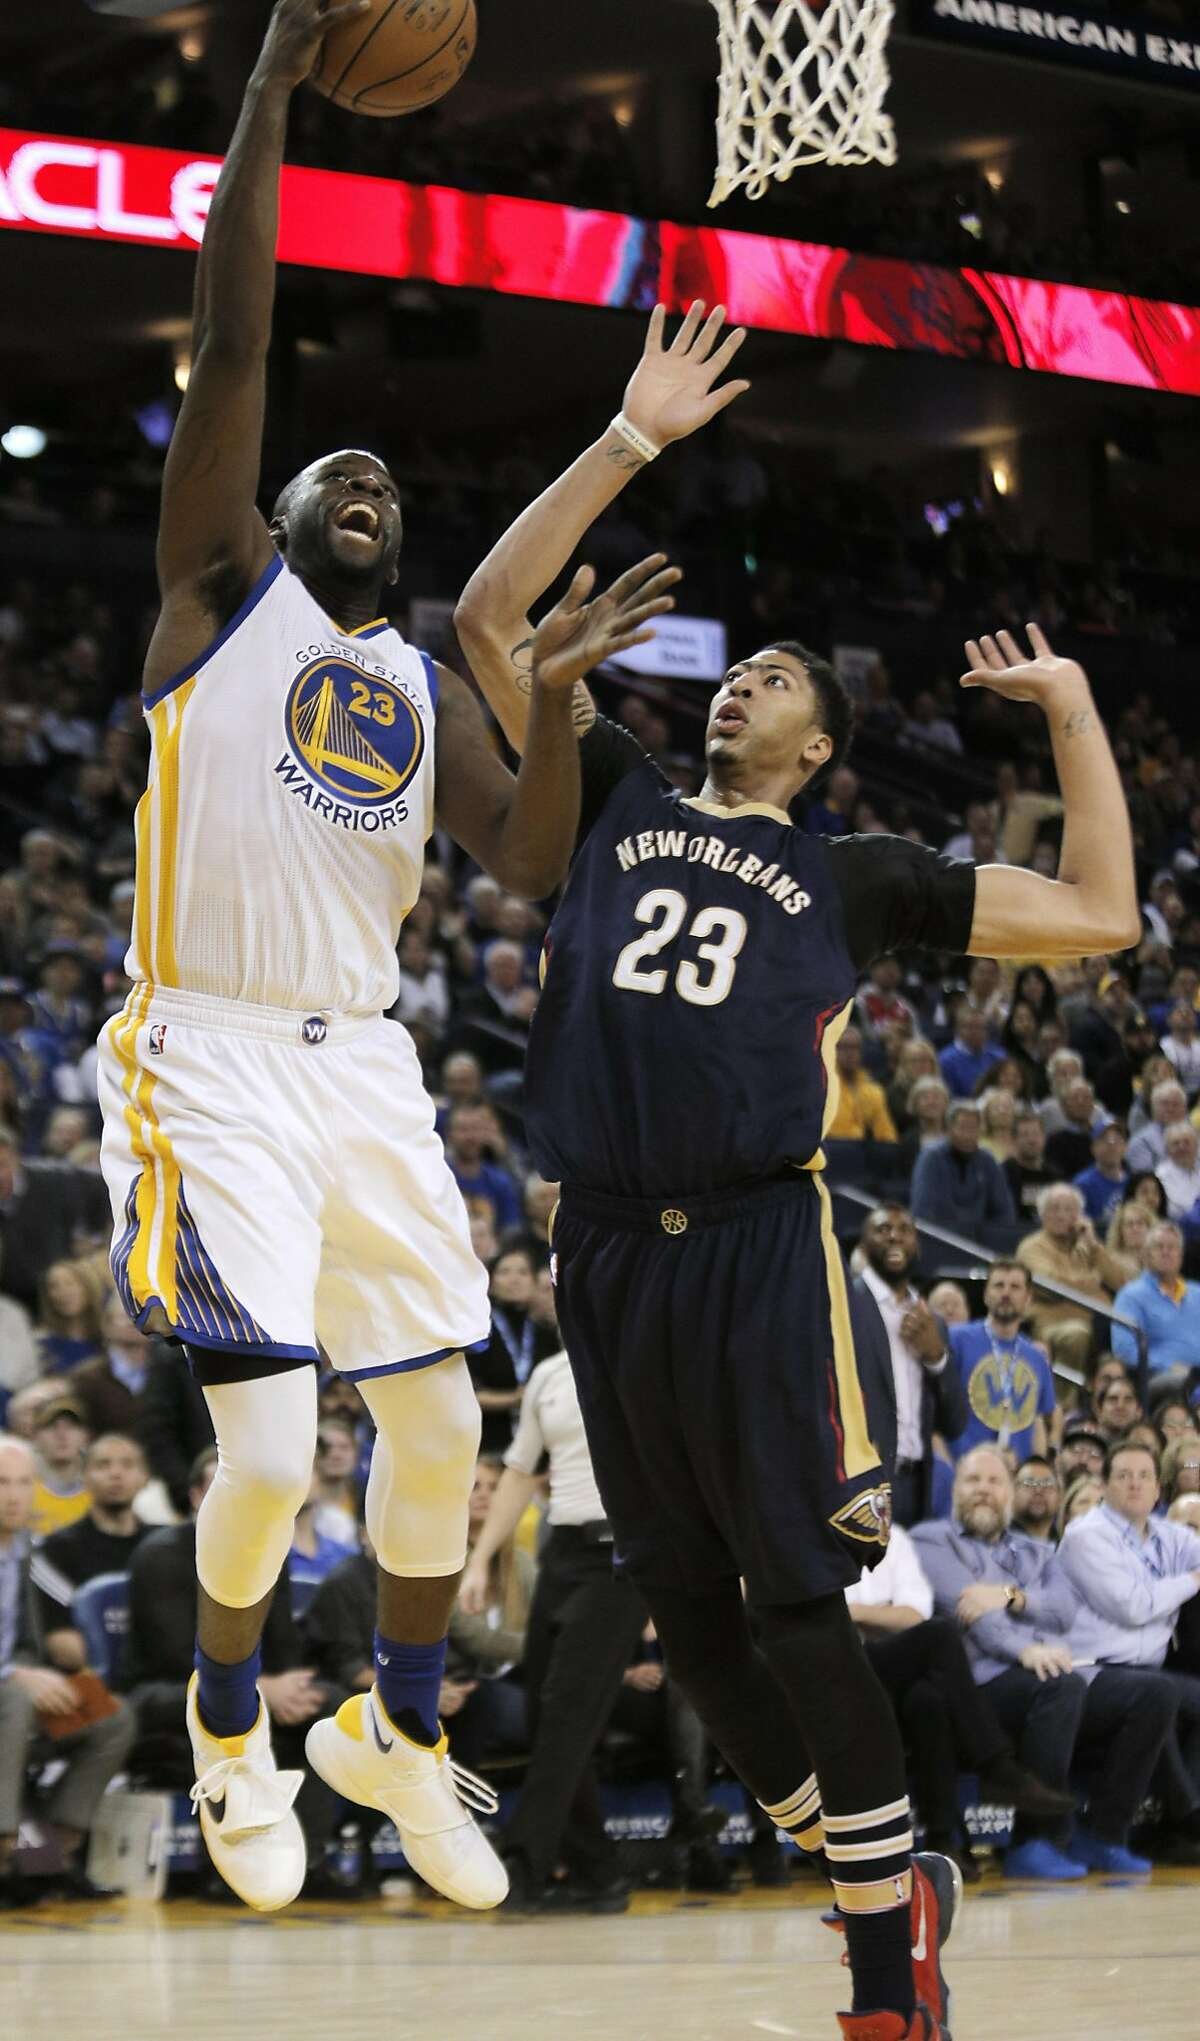 Draymond Green (23) puts in a layup over Anthony Davis (23) in the first half as the Golden State Warriors played the New Orleans Pelicans at Oracle Arena in Oakland, Calif., on Monday, March 14, 2016.